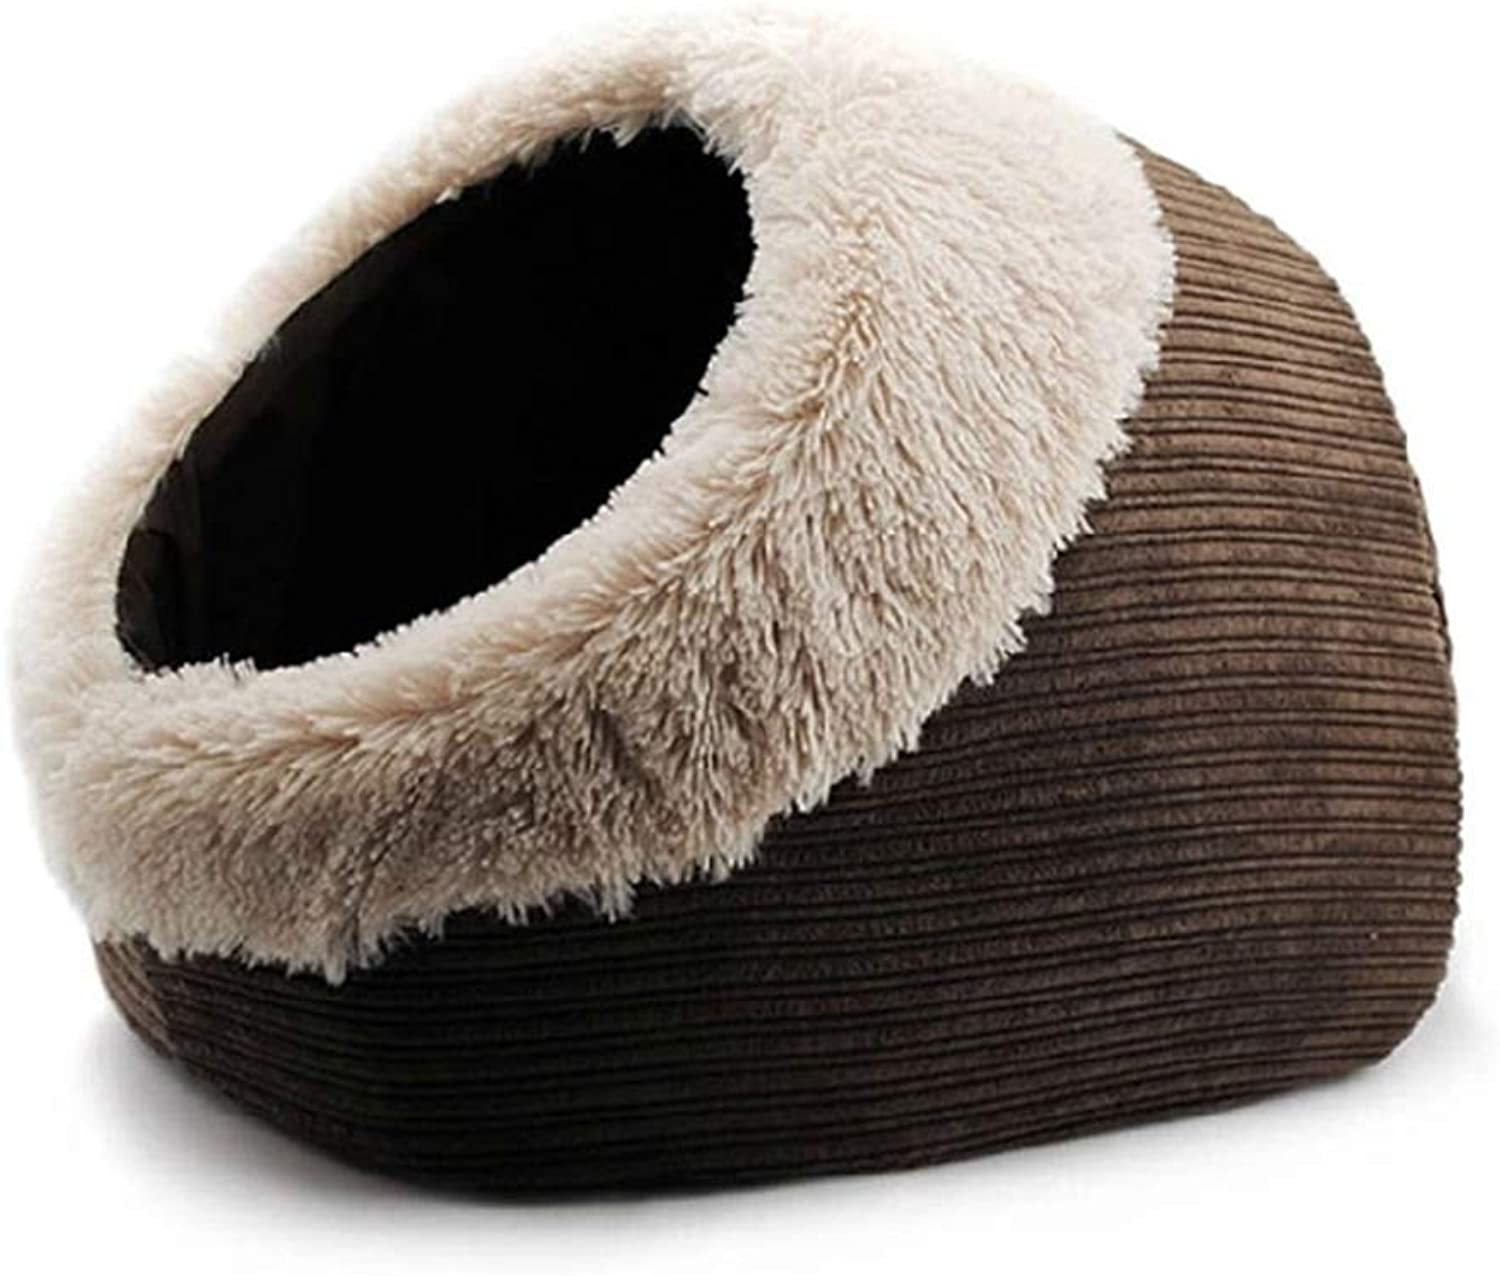 Closed Chocolate Cat Nest, Warm Indoor Cat Bed House Cozy Cat Sleeping Bag Pet Tent Pet Cave Removable and Washable Mat,Brown